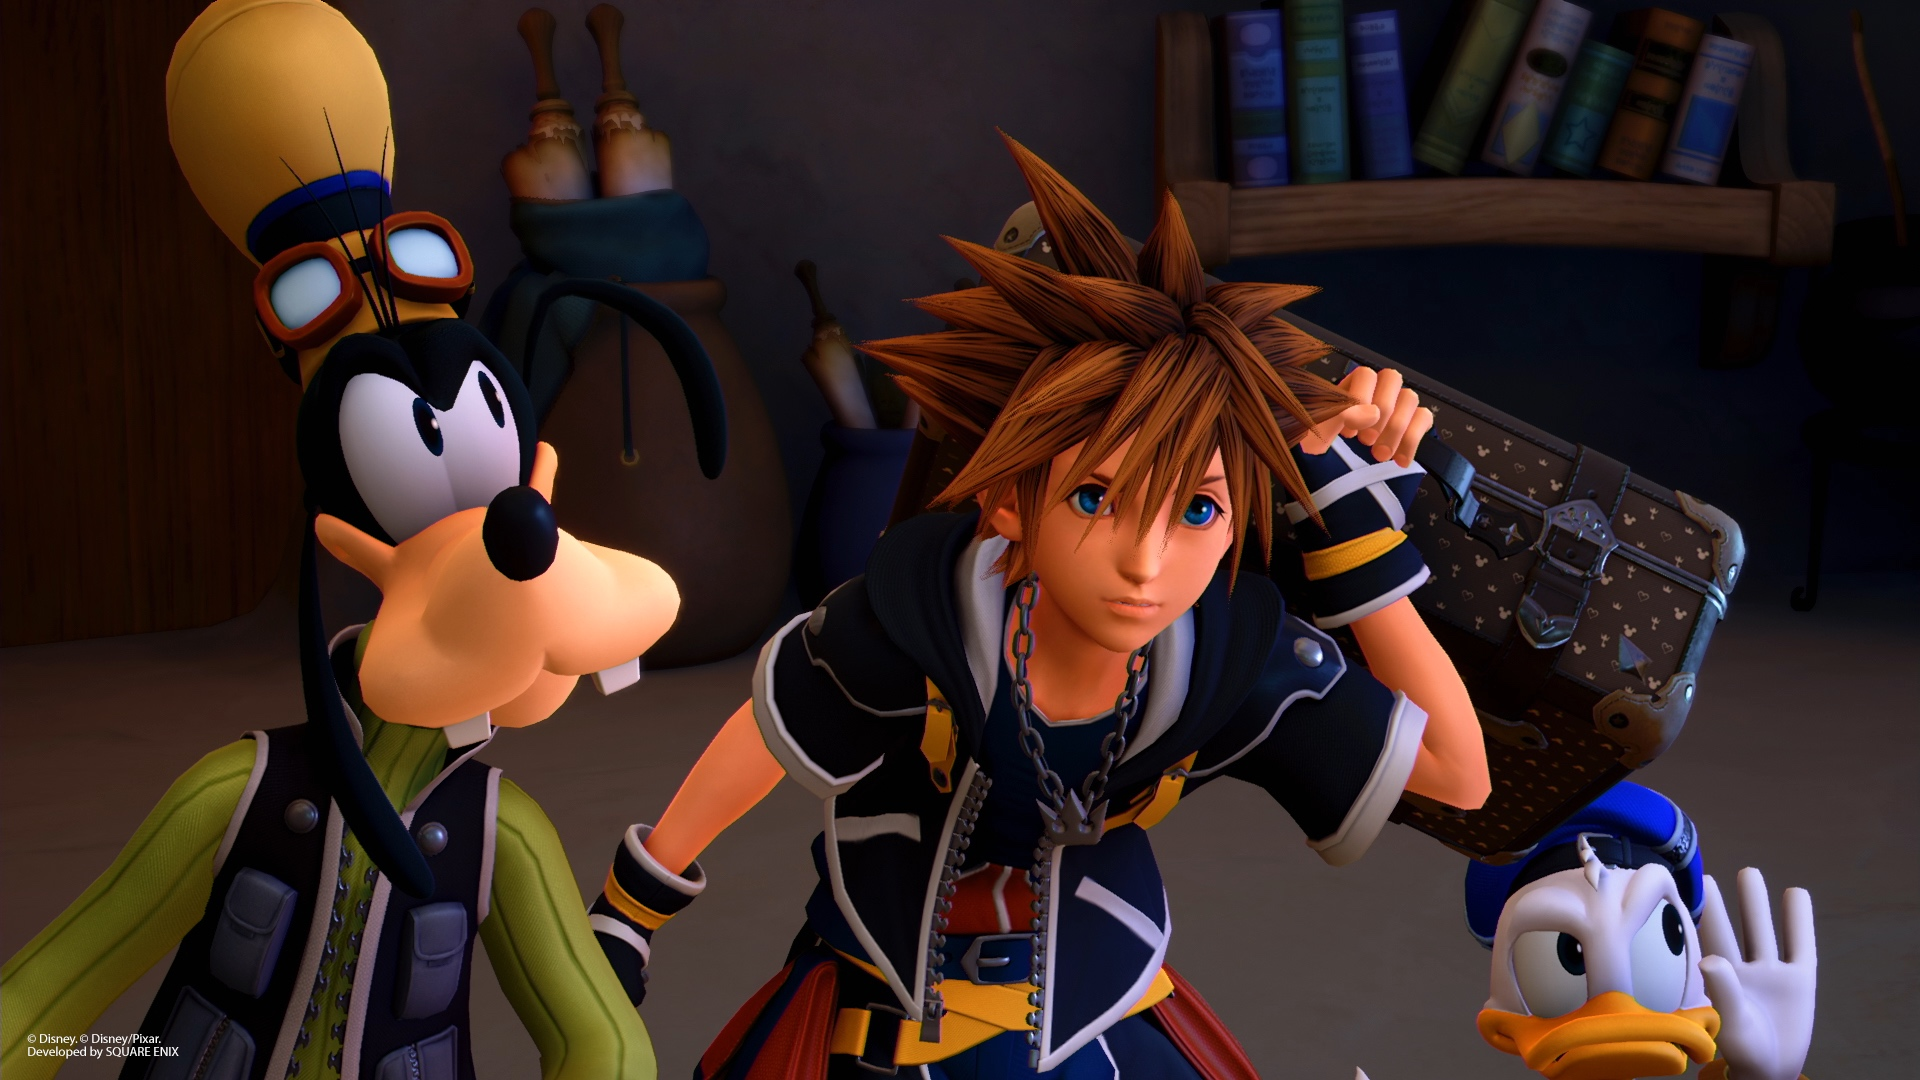 Donald, Goofy and Sora look suspicious in a screenshot from Kingdom Hearts 3.